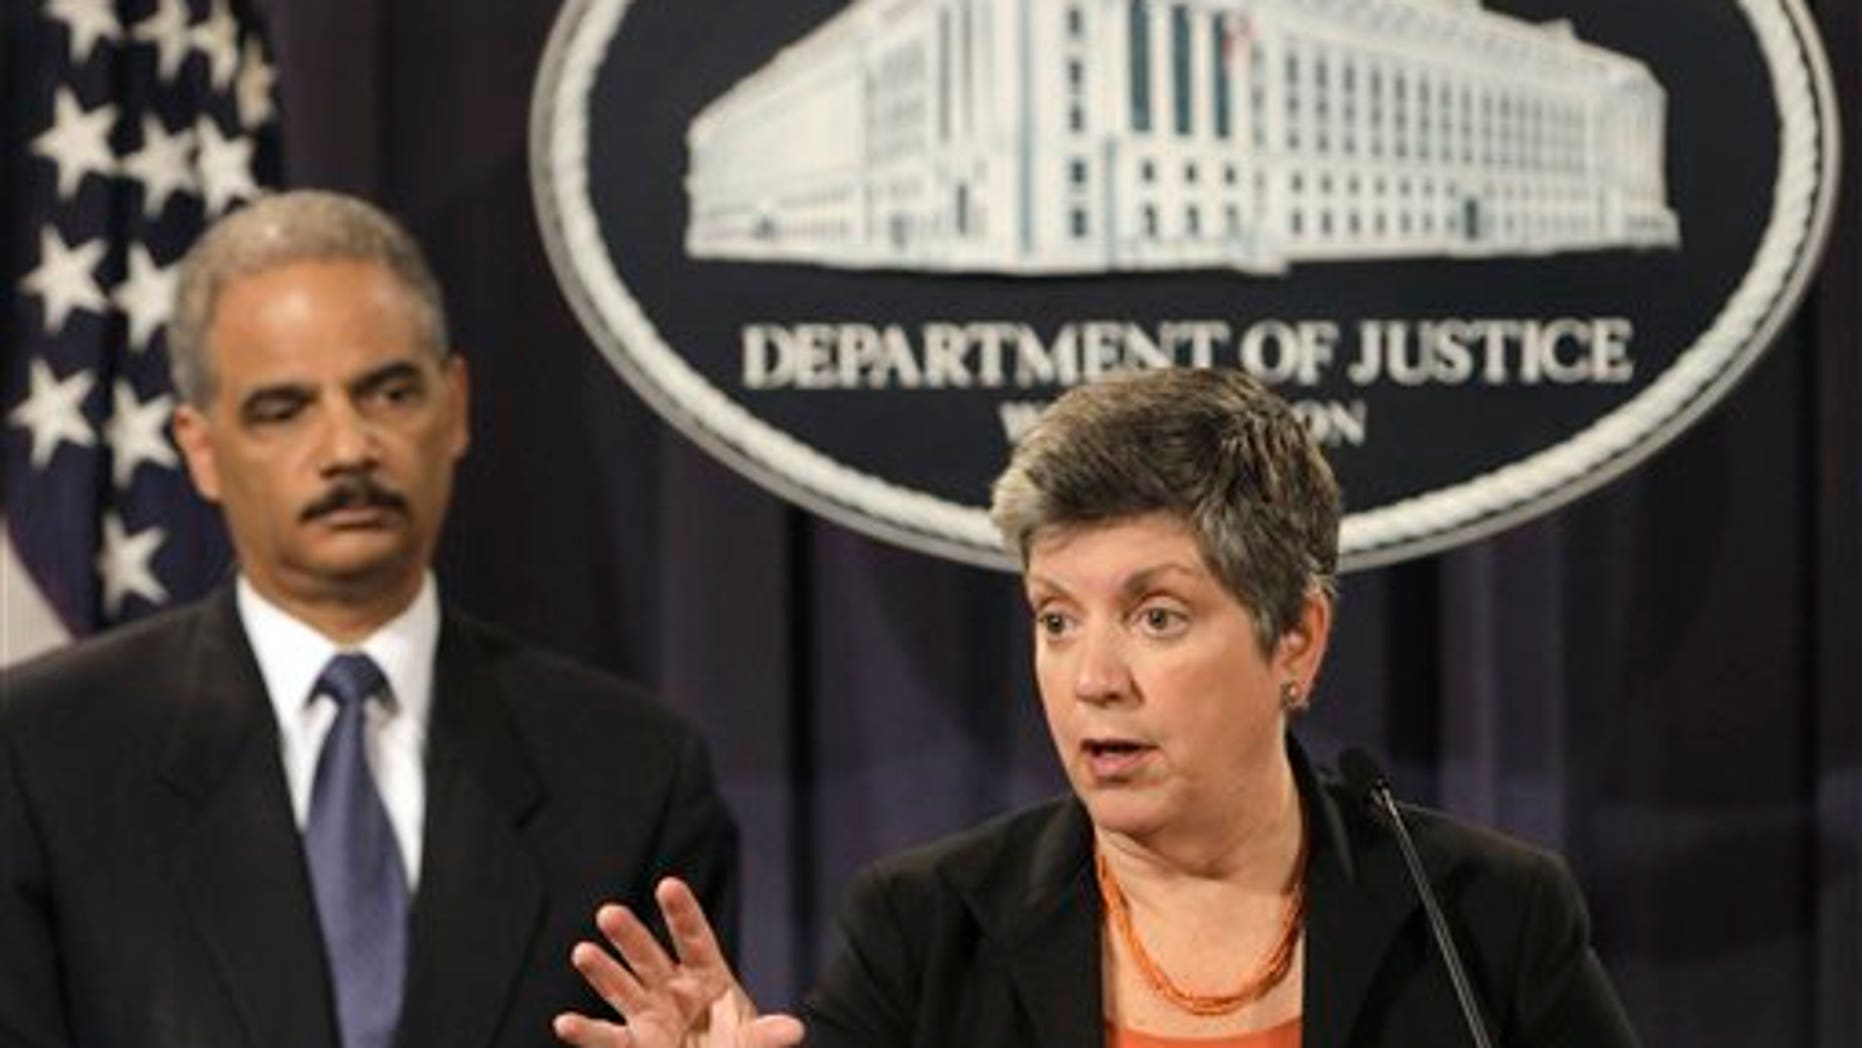 Aug. 3: Attorney General Eric Holder listens at left as Homeland Security Secretary Janet Napolitano speaks at the Justice in Washington, to discuss the results of the largest U.S. prosecution of an international criminal network organized to sexually exploit children.